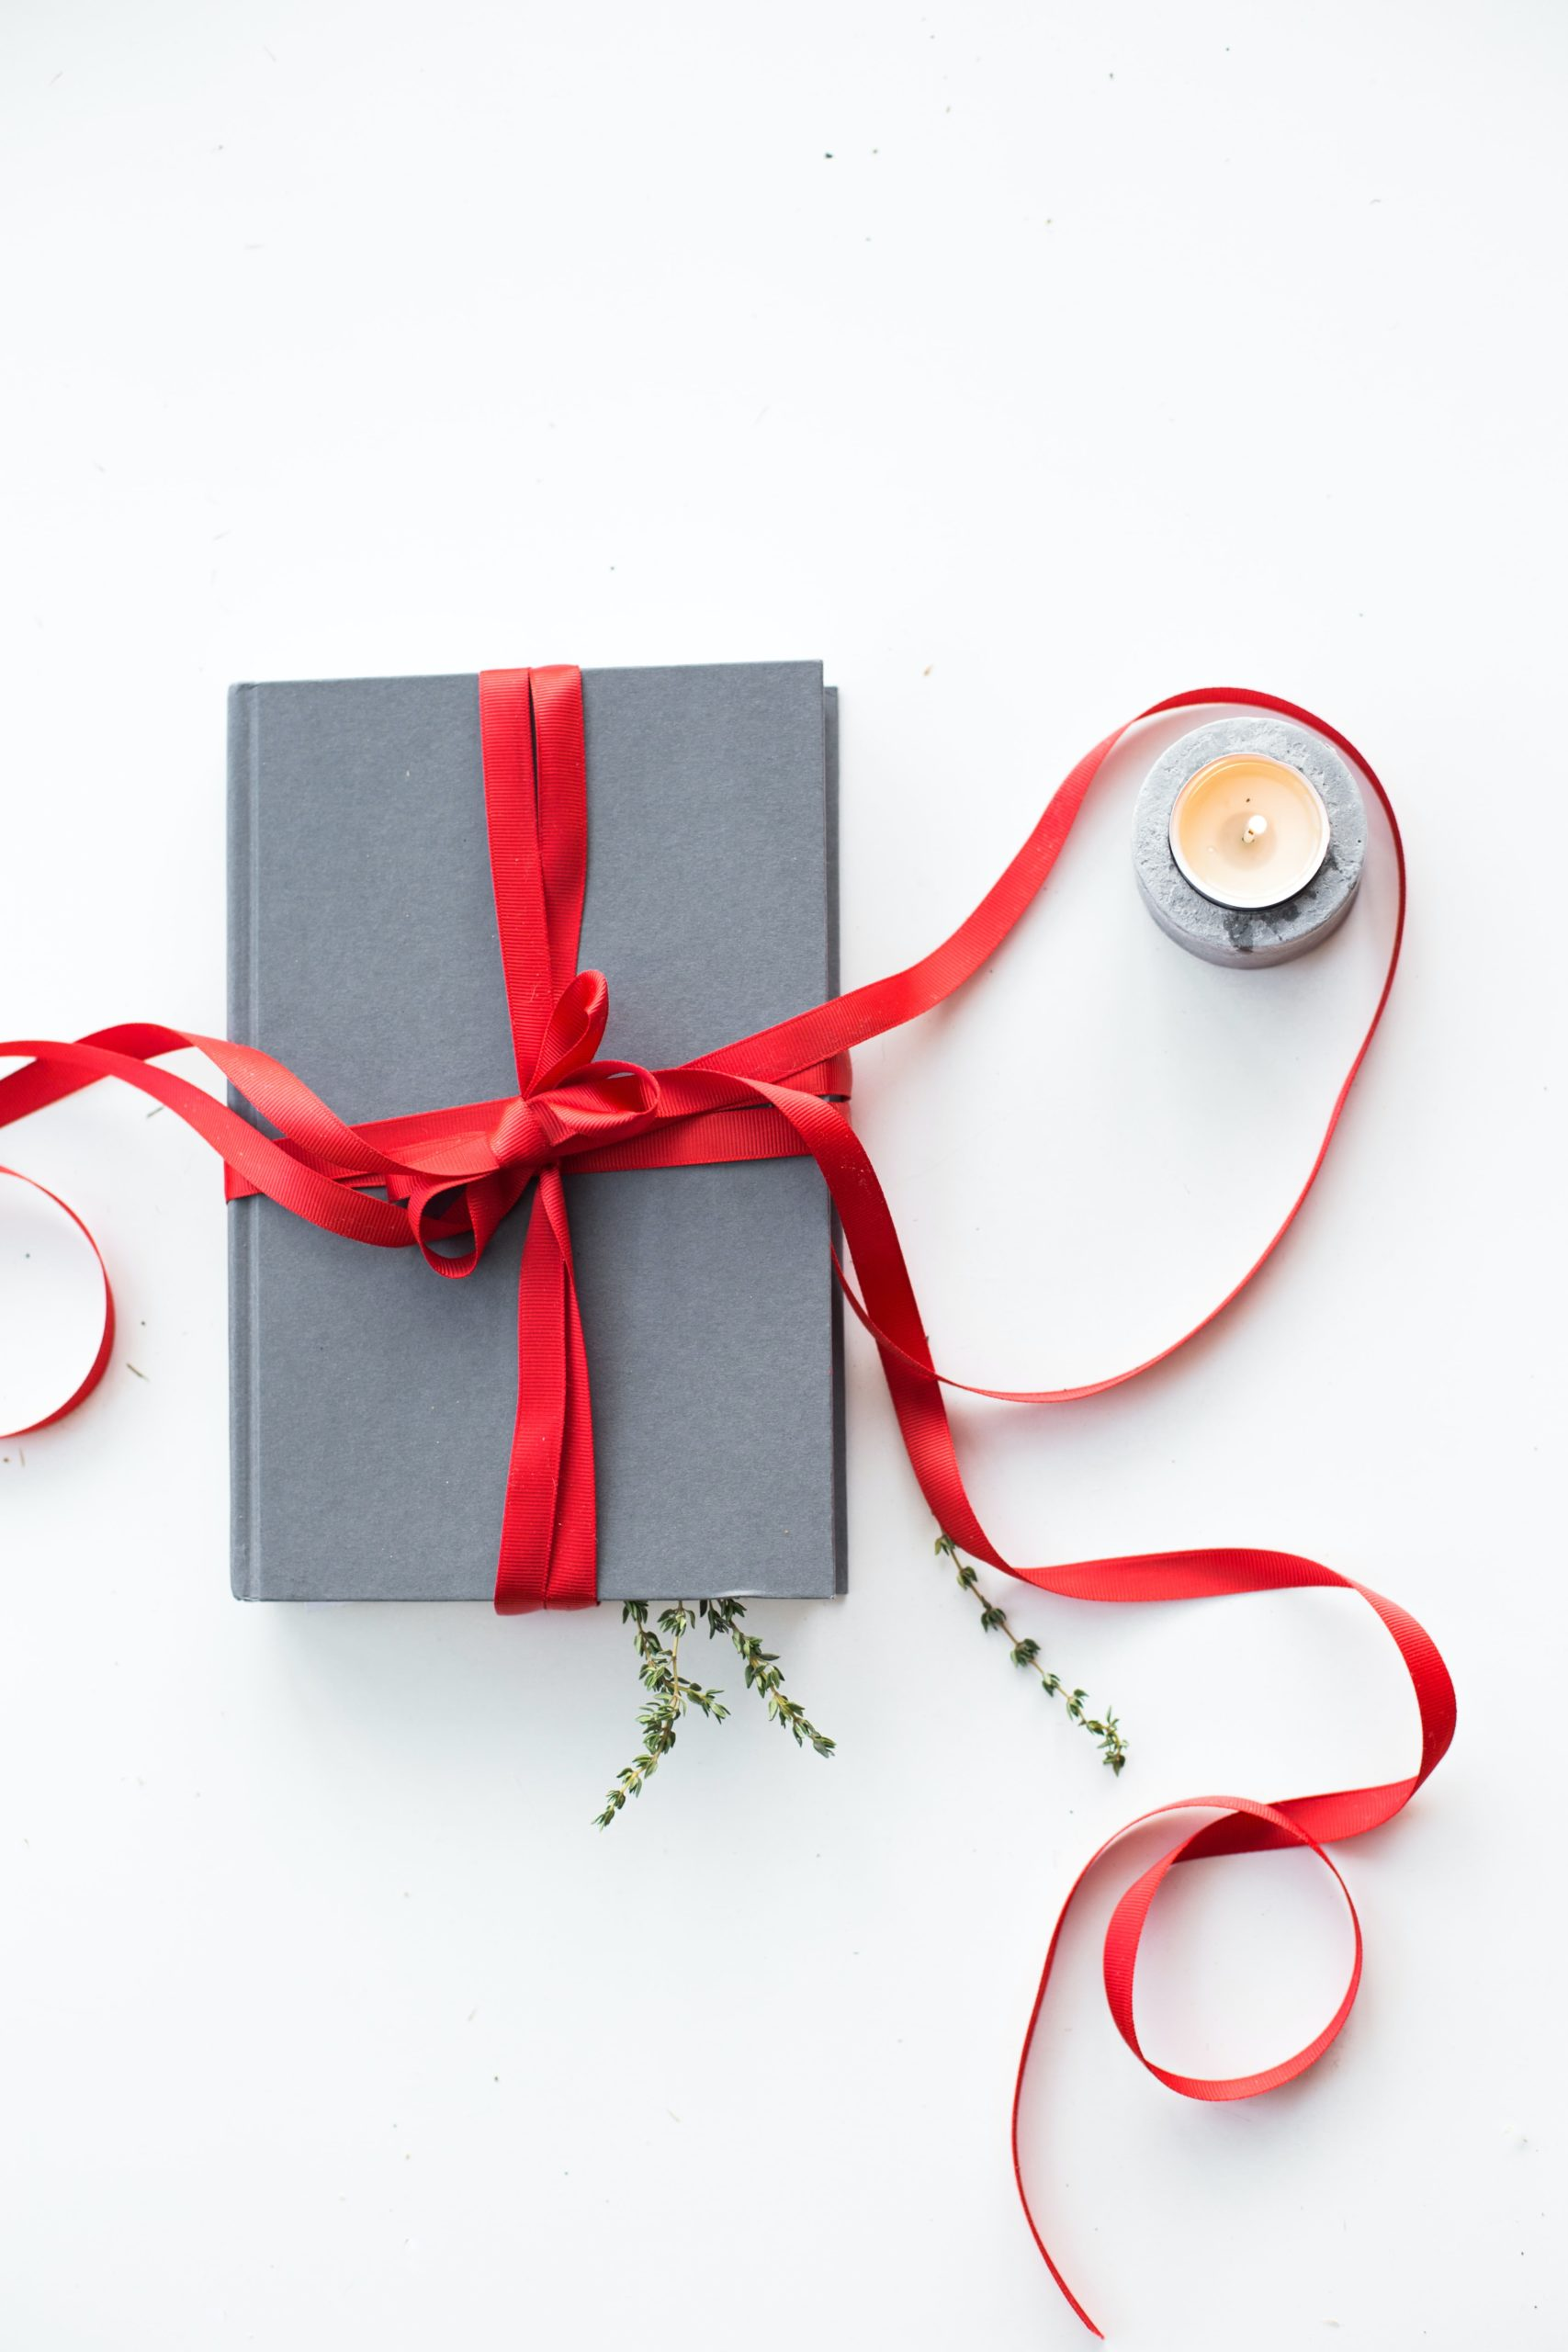 Grey notebook wraped with a red ribbon next to a tea light candle